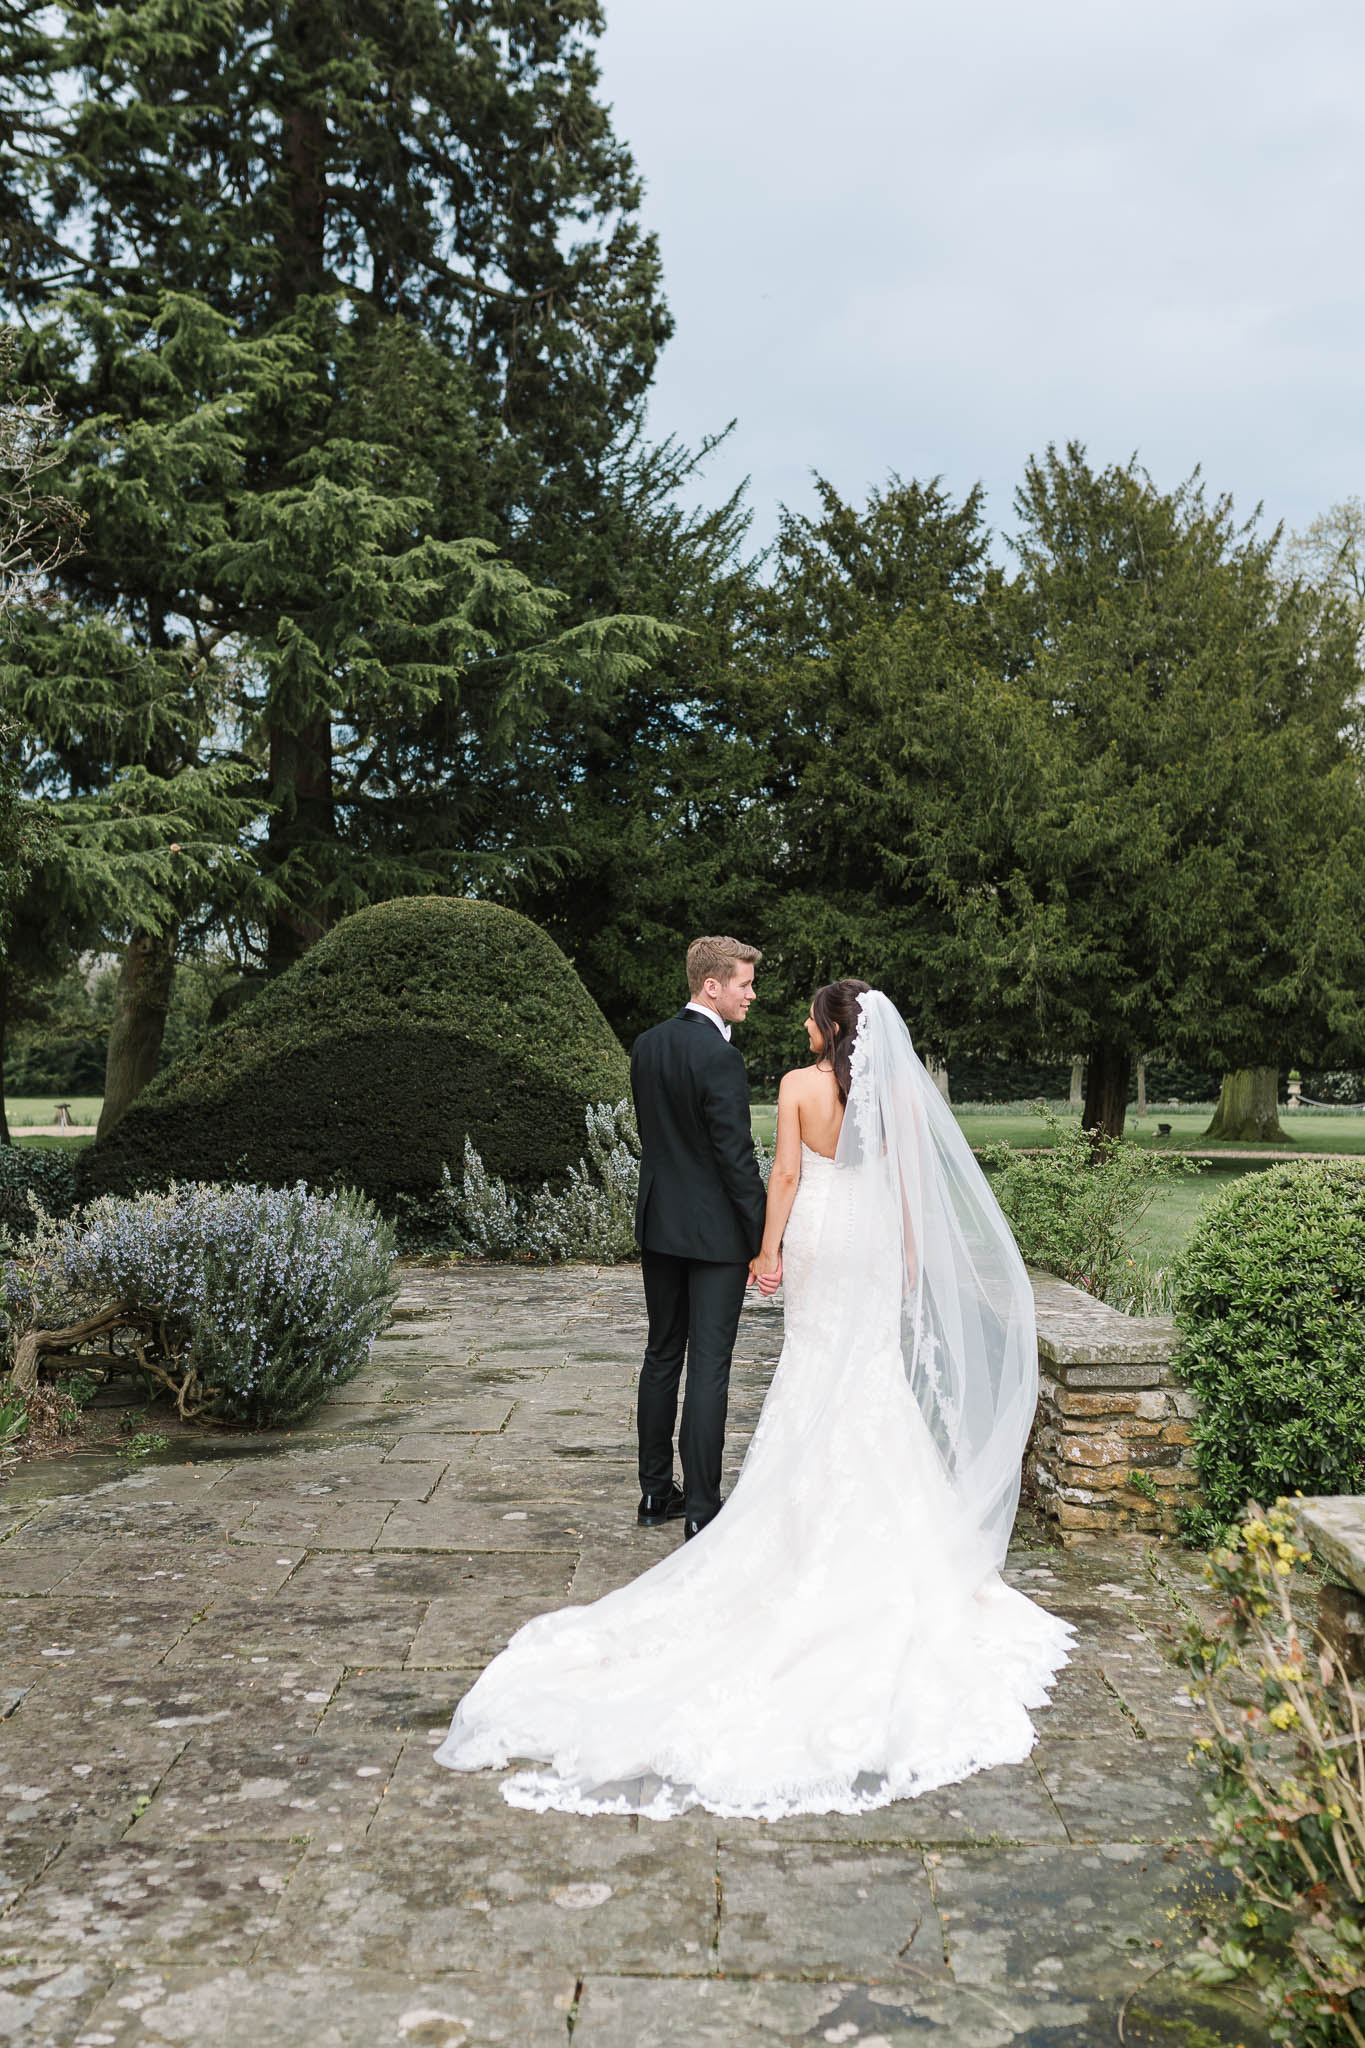 natural photo of bride and groom - elegant and stylish wedding